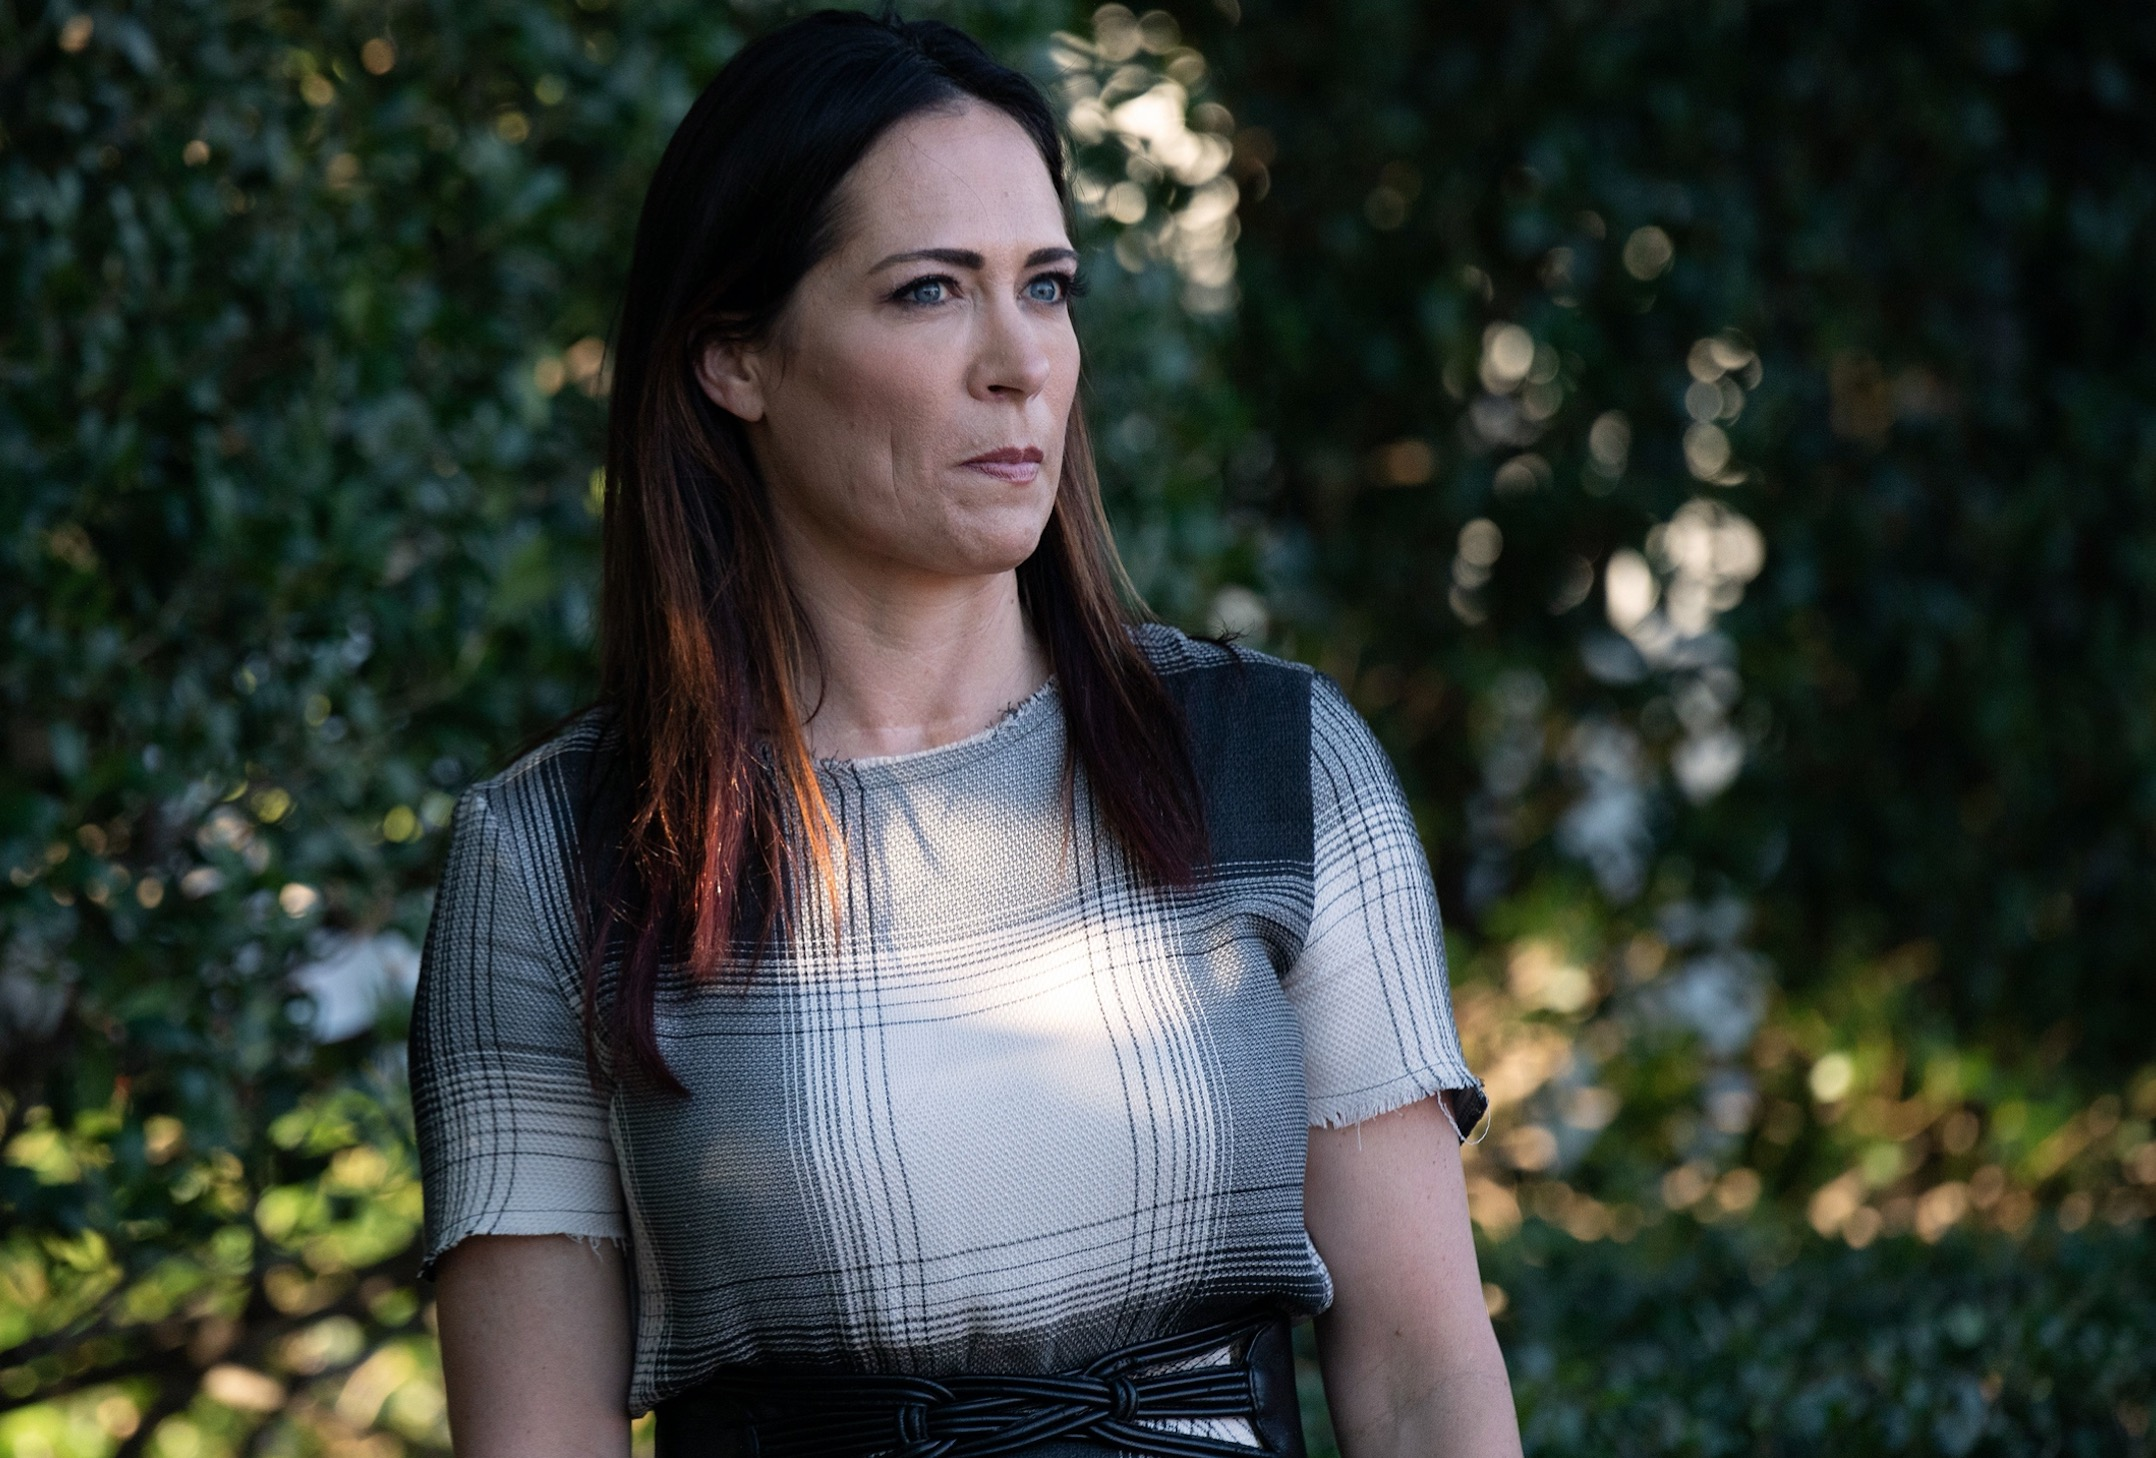 Stephanie Grisham will be next White House press secretary